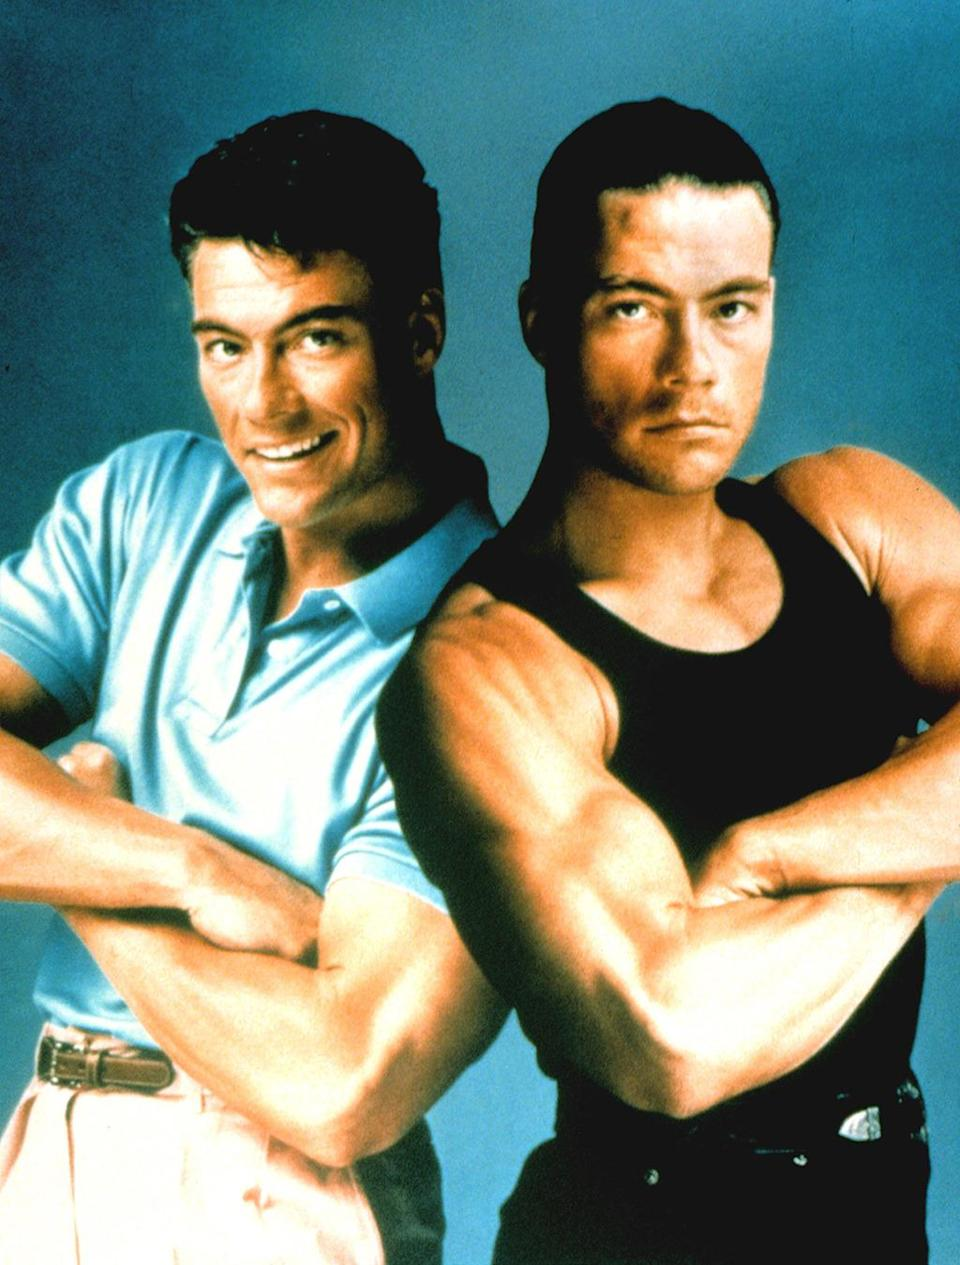 <p>Instead of twins separated at birth, Van Damme plays a set of identical siblings who part after the death of their parents in this 1991 action flick. They lead separate lives until reuniting to avenge the murder of their mother and father. <i>(Photo: Everett Collection)</i></p>